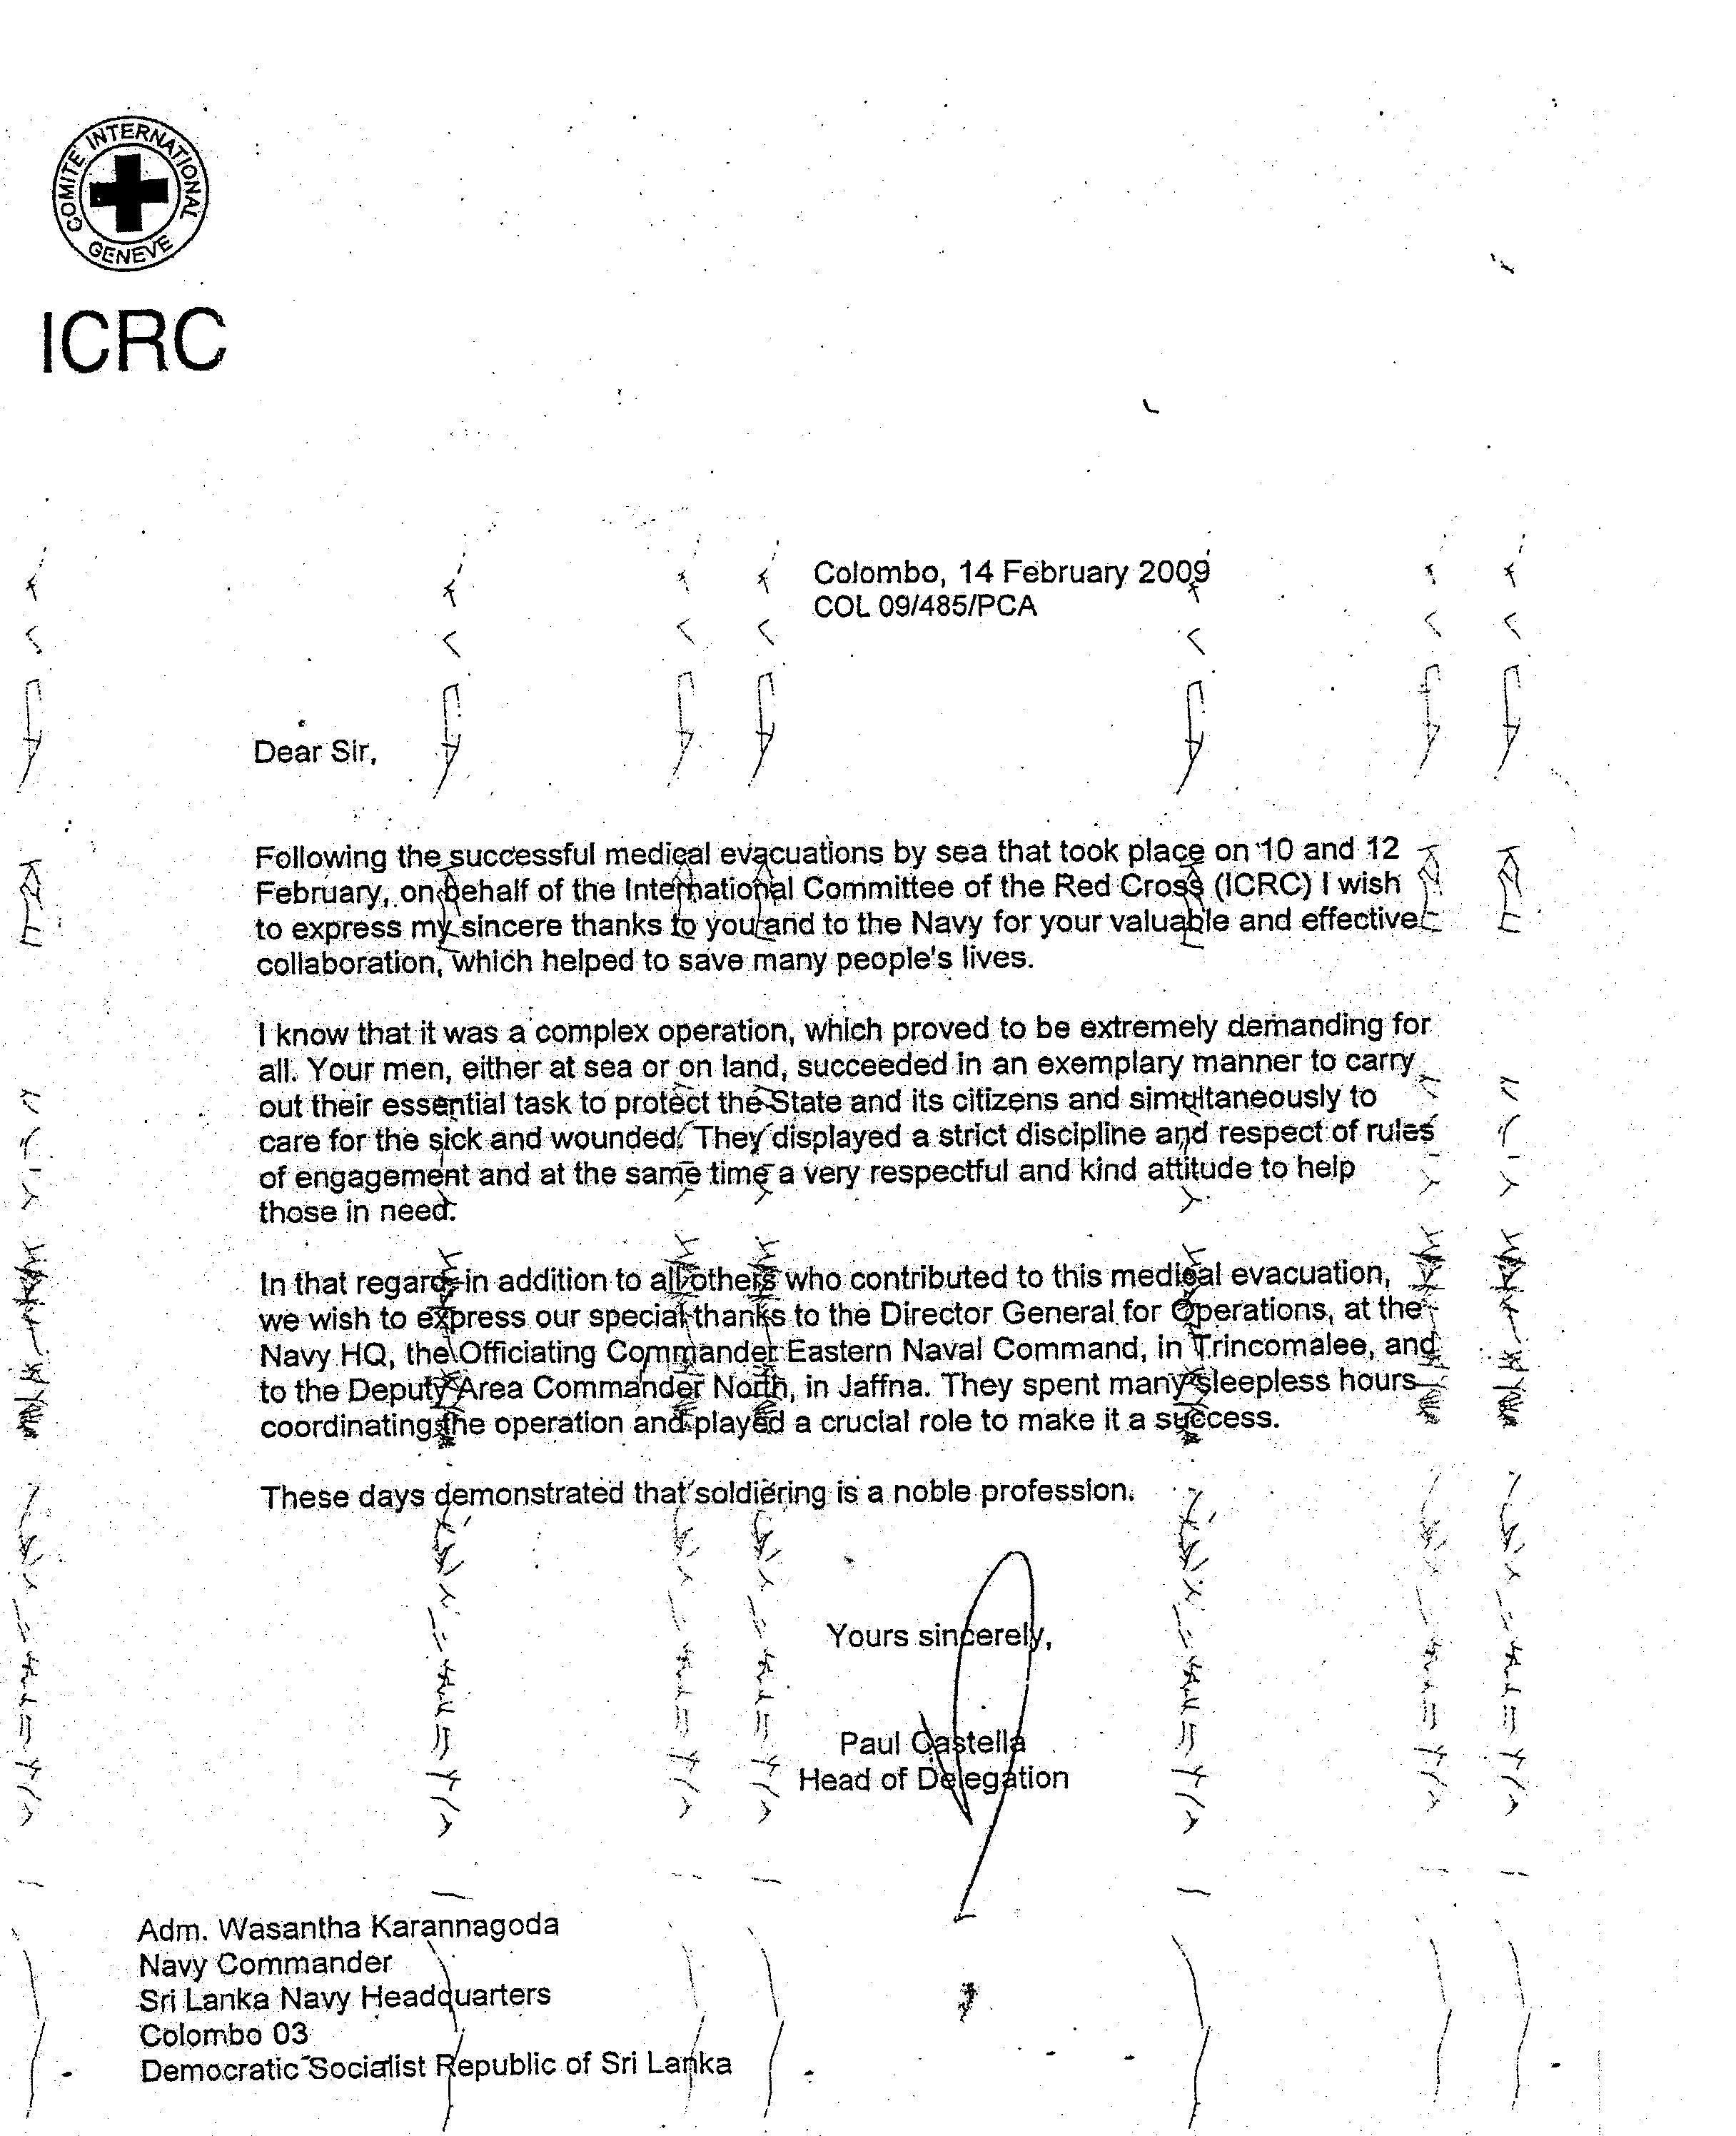 The role of the armed forces in reconciliation rajiva wijesinha very respectful and kind attitude to help those in need to cite a letter sent by the head of the icrc altavistaventures Choice Image